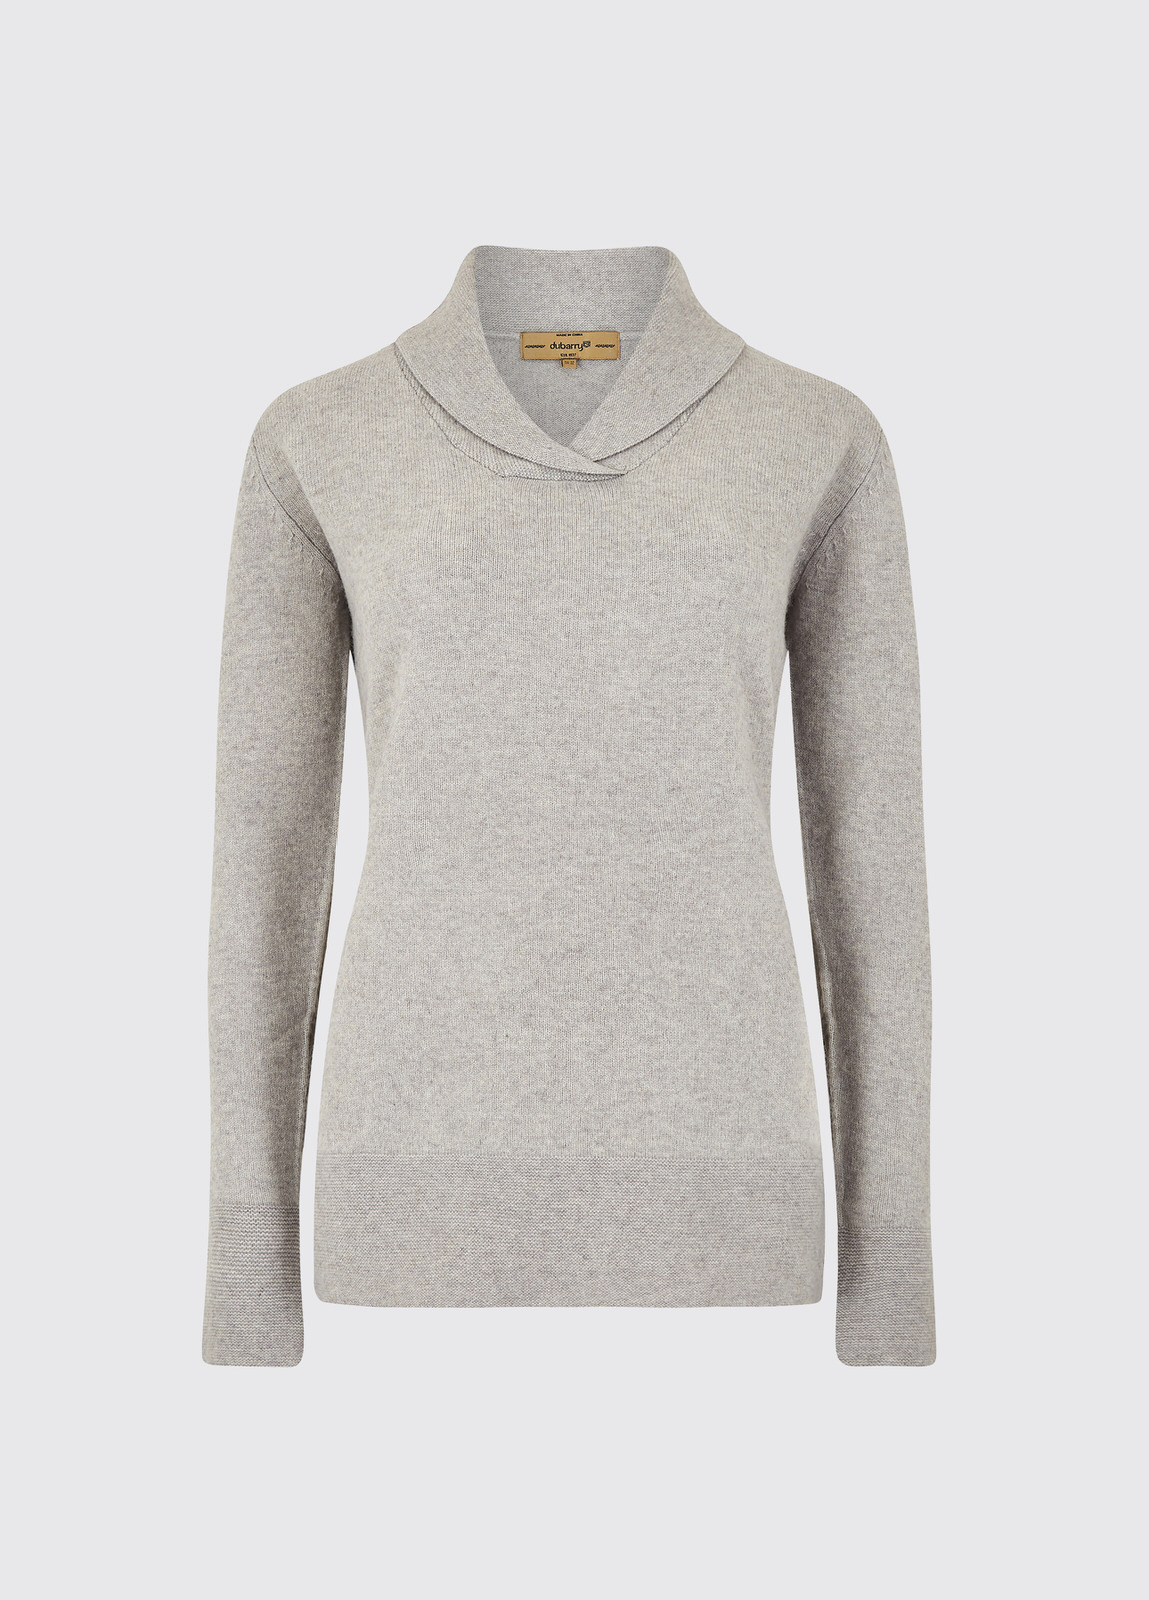 Dunaghmore Sweater - Silver Grey